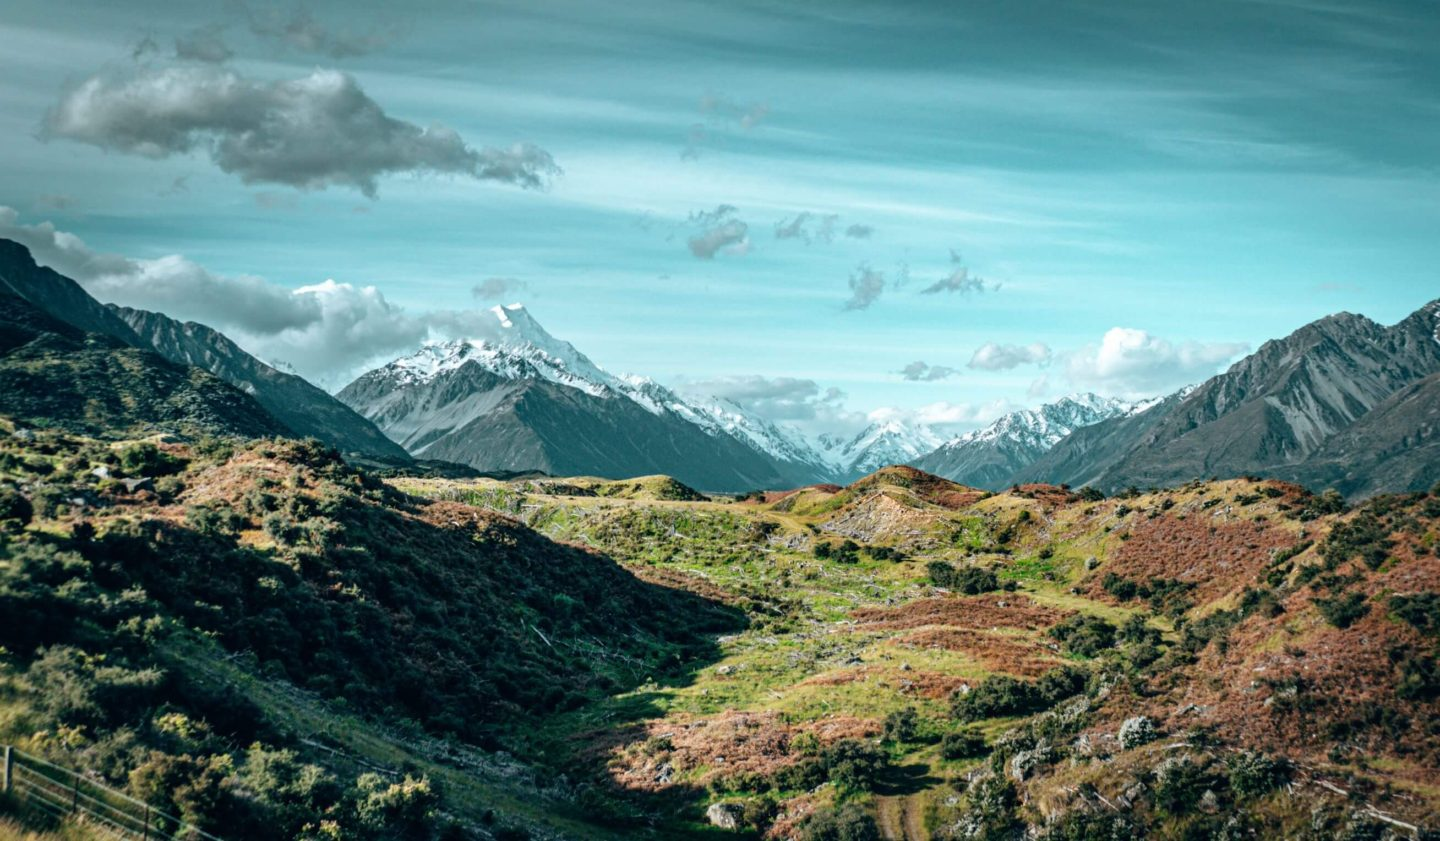 The valley view from the Tasman Glacier